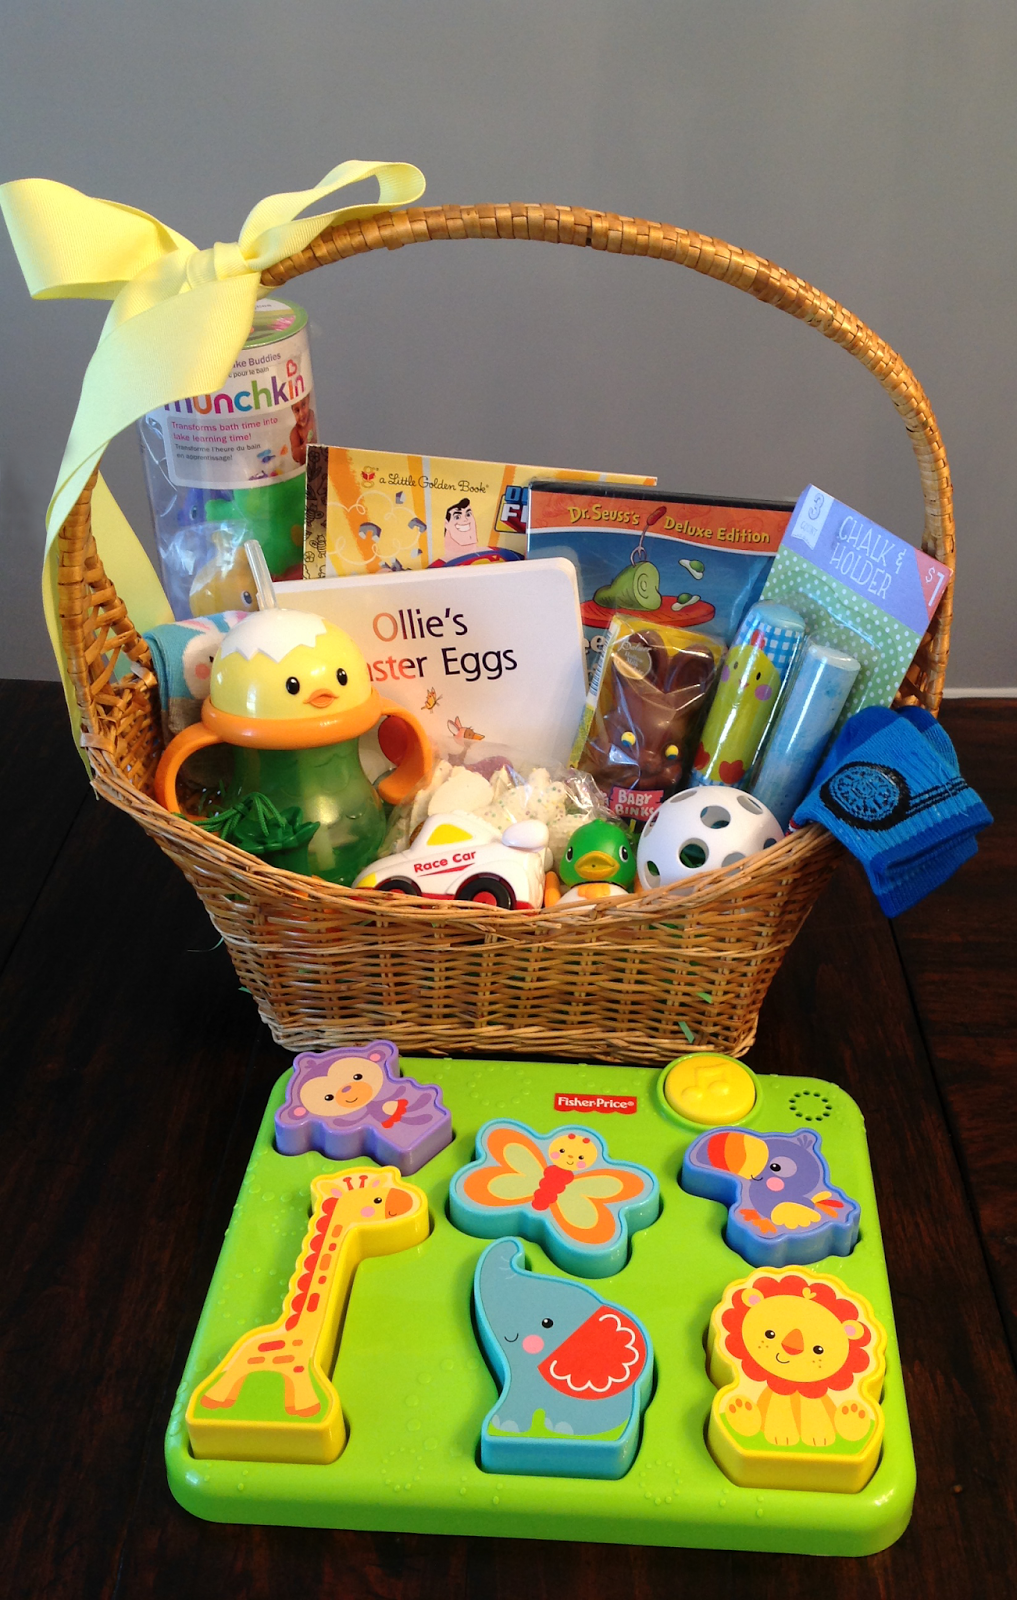 Hand me down mom genes 95 easter basket ideas for babies hand me down mom genes 95 easter basket ideas for babies toddlers negle Image collections